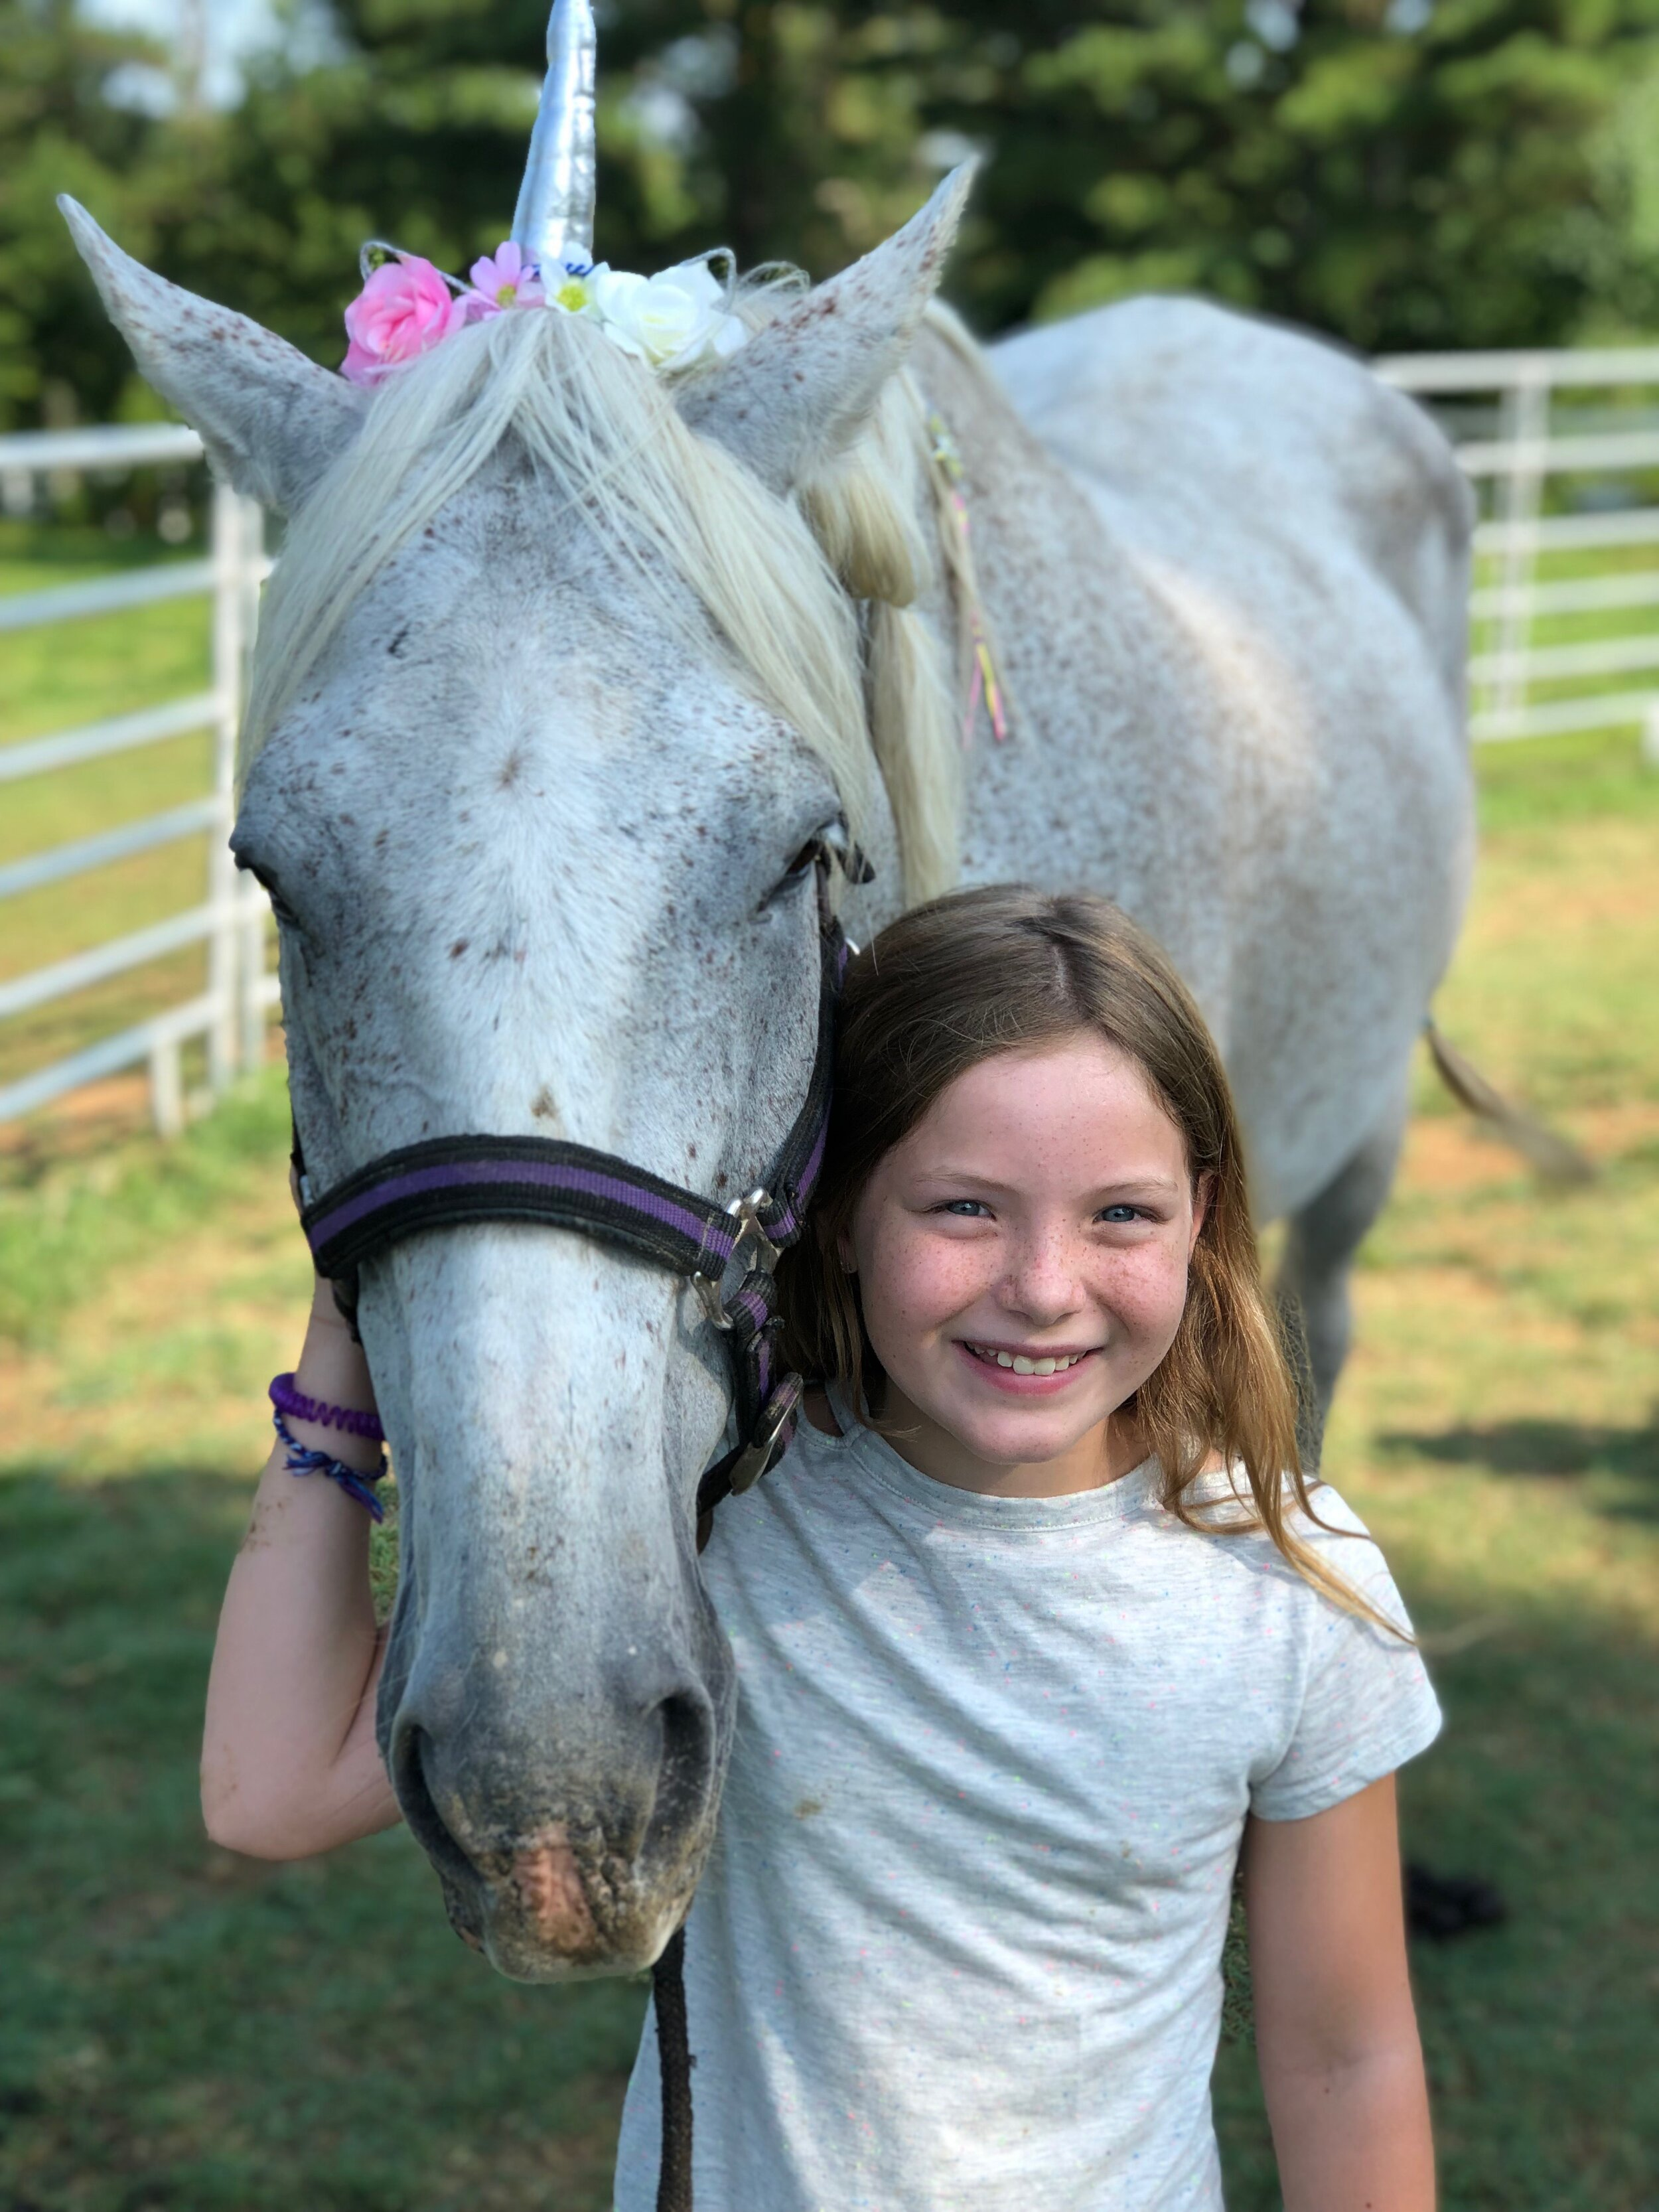 What is Equine Assisted Psychotherapy (EAP)?In EAP you have horses.  The horses could care less what people say or what they don't say.   They use their superpower, reading body language.  I tell my young clients its real life Spidey sense, or Horsey sense.	How do we as humans tap into that super power? It takes a team, of client, therapist, and horses. The trained therapist and certified EAP horse professional observe your interactions with the horse.  The horse cannot lie.  Its reactions are 100% honest.  Then you'll be instructed to do a task with the horse for 20-30 minutes.   After we talk about any observations we had from the interaction.  At that point it's up to you to fill in the why.  This is when EAP steps away from traditional therapy.  You just had a real life experience with a horse. It wasn't a retelling, or reenactment.    You get to the truth faster, meaningfully, and with longer lasting impact.   Book Now for your healing and hope journey to start.                                   -